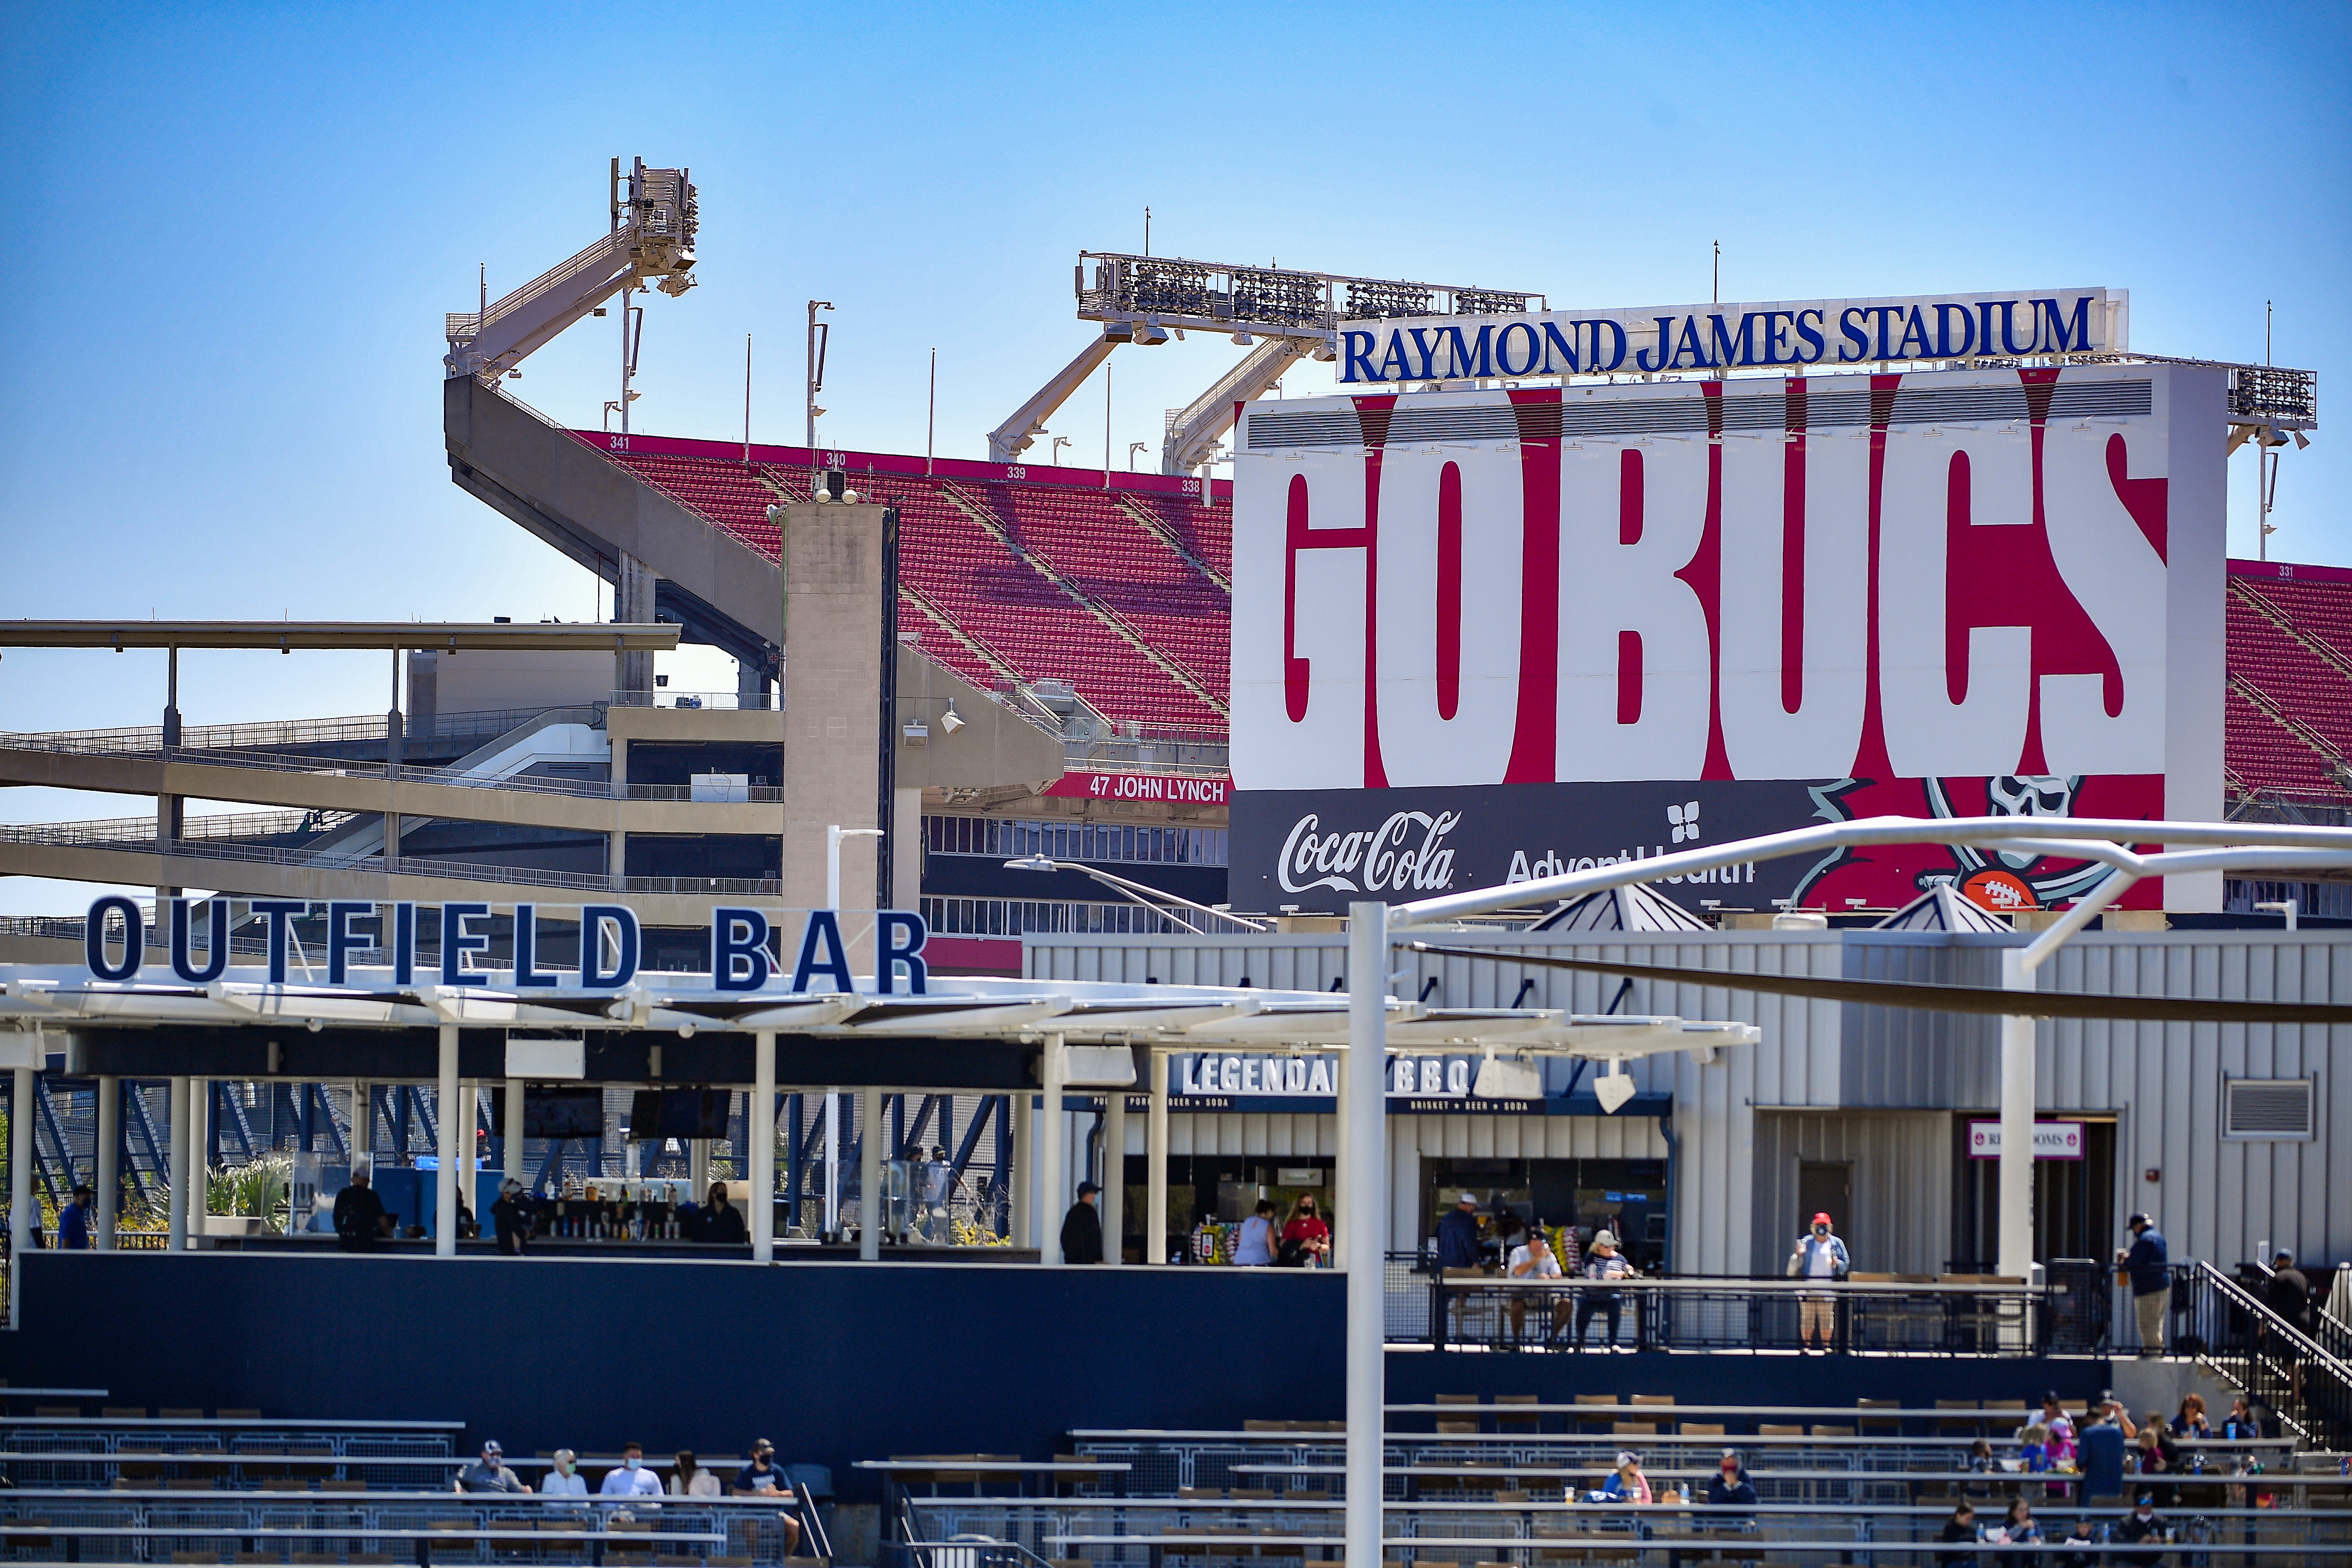 A general view of Raymond James Stadium behind the outfield bar during the spring training game between the New York Yankees and the Philadelphia Phillies at George M. Steinbrenner Field on March 07, 2021 in Tampa, Florida.